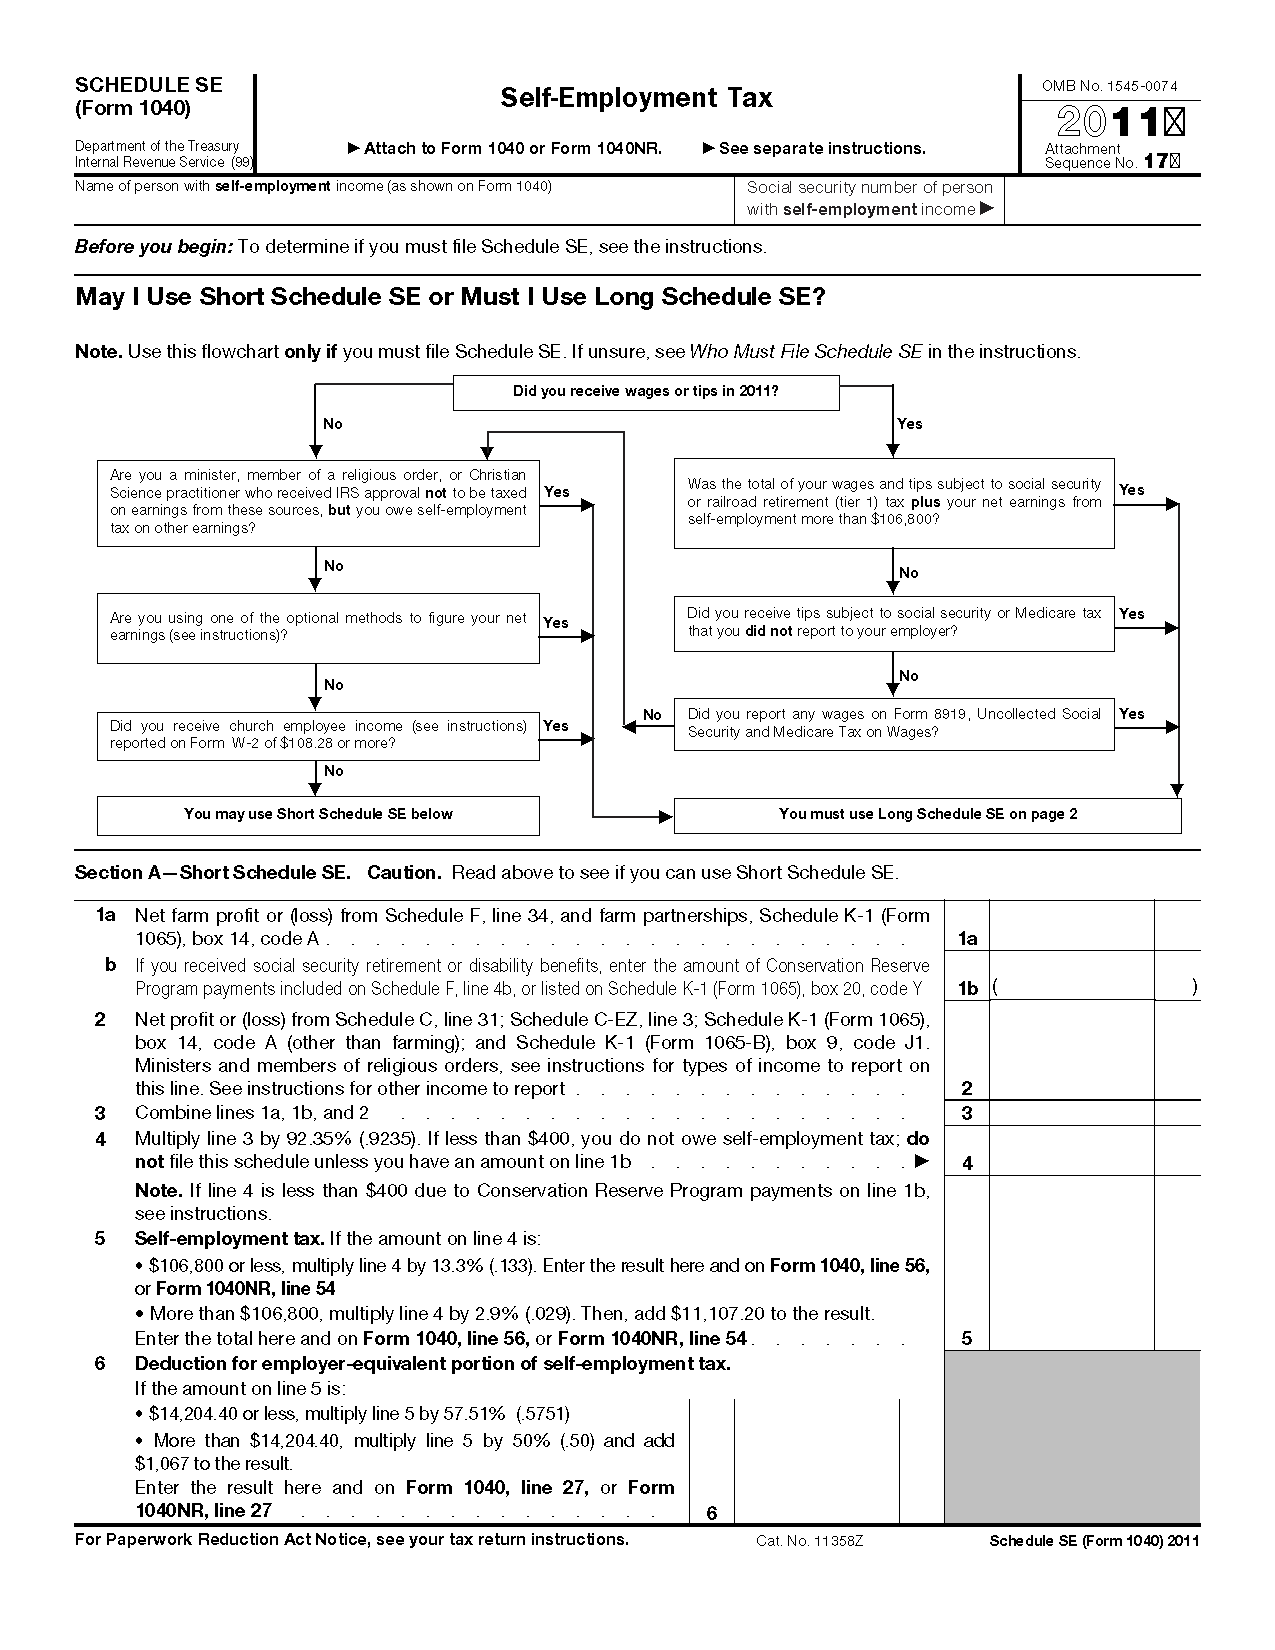 What Is Irs Form